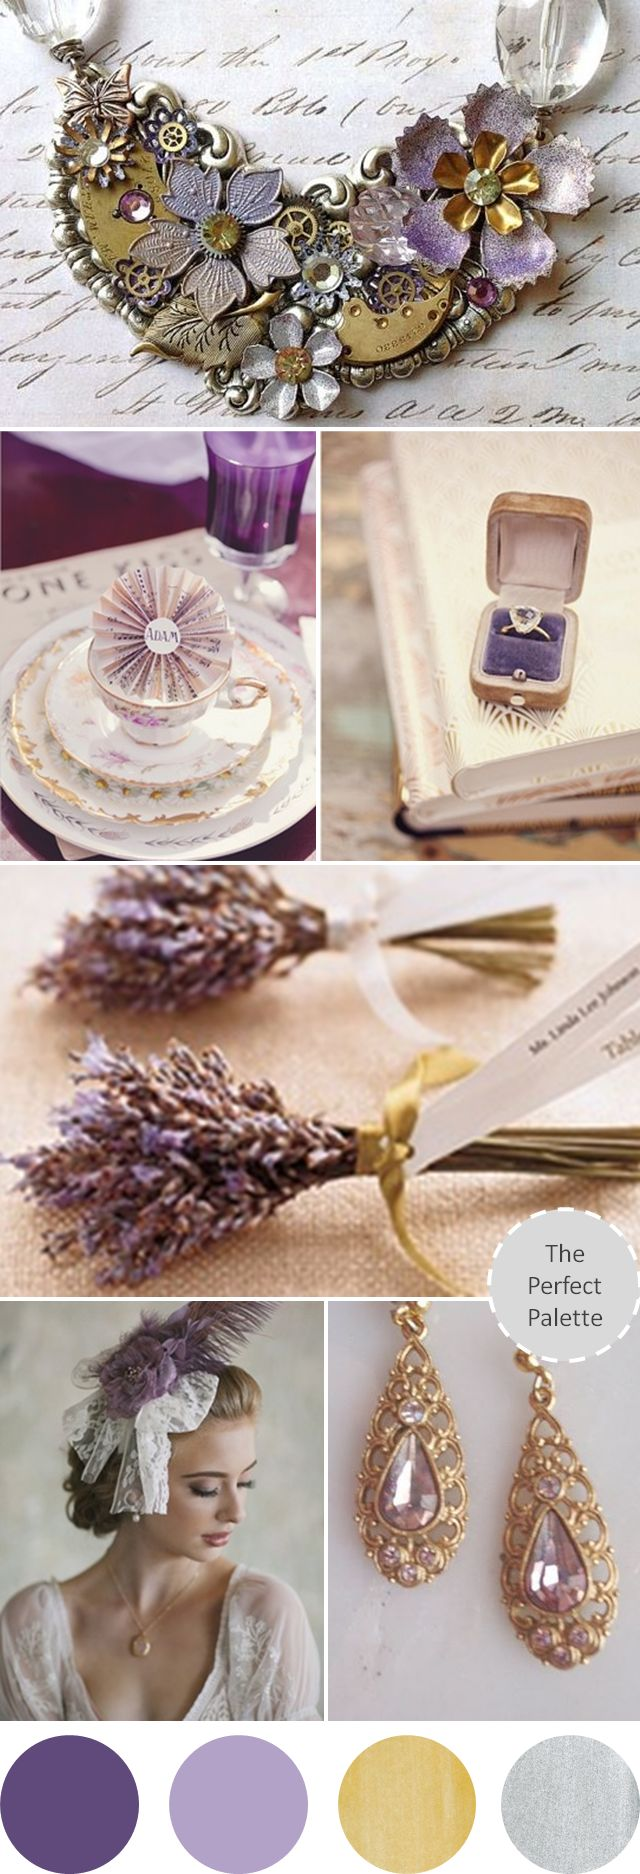 Wedding Colors I Love | Shades of Lavender, Gold Silver